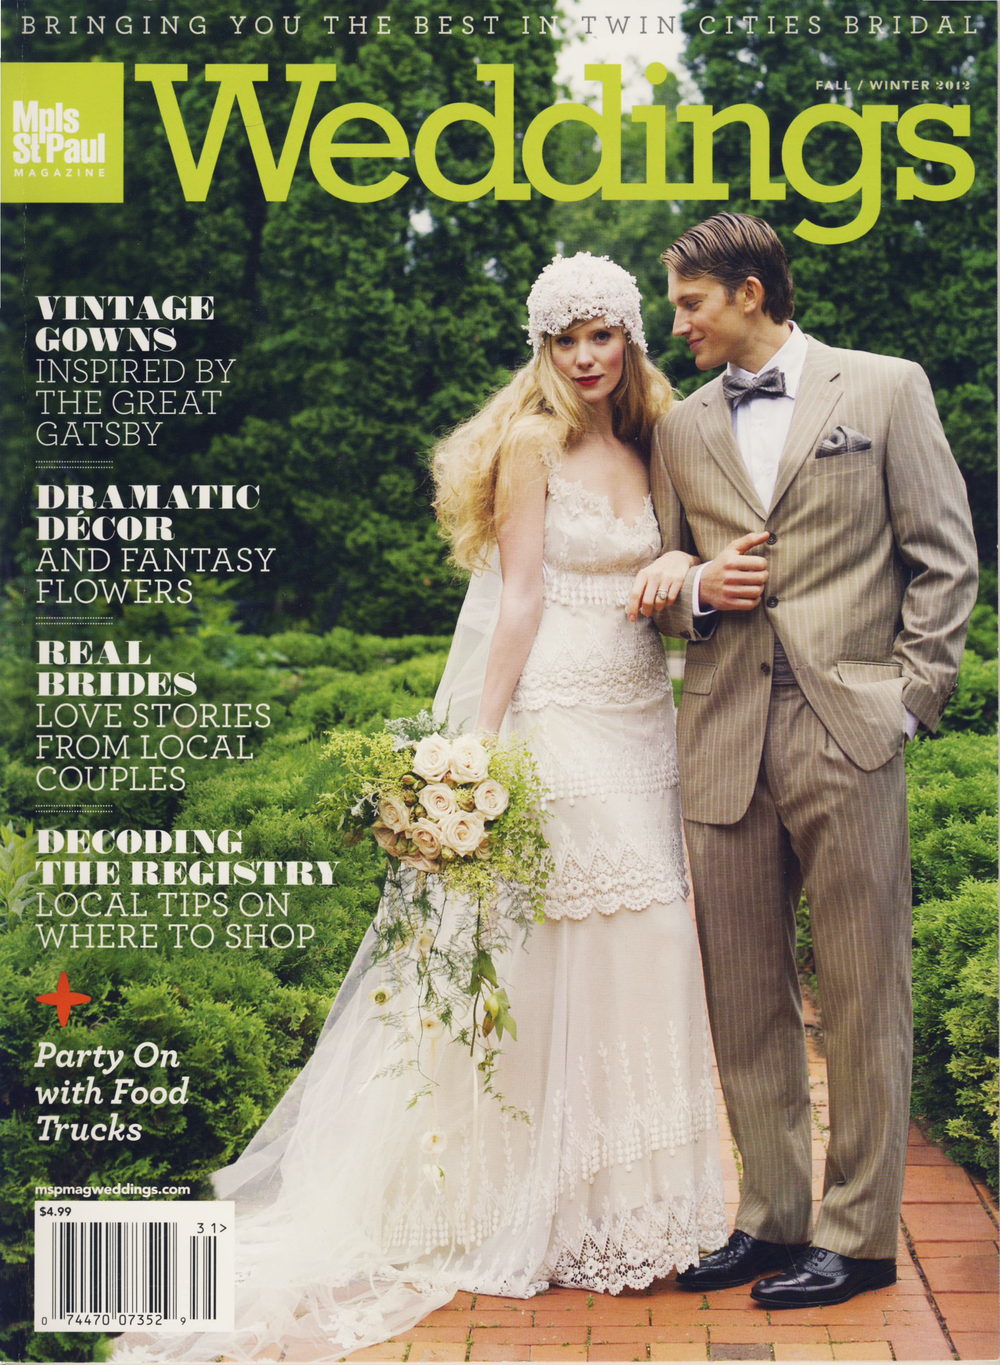 MSP Weddings, Fall/Winter 2012